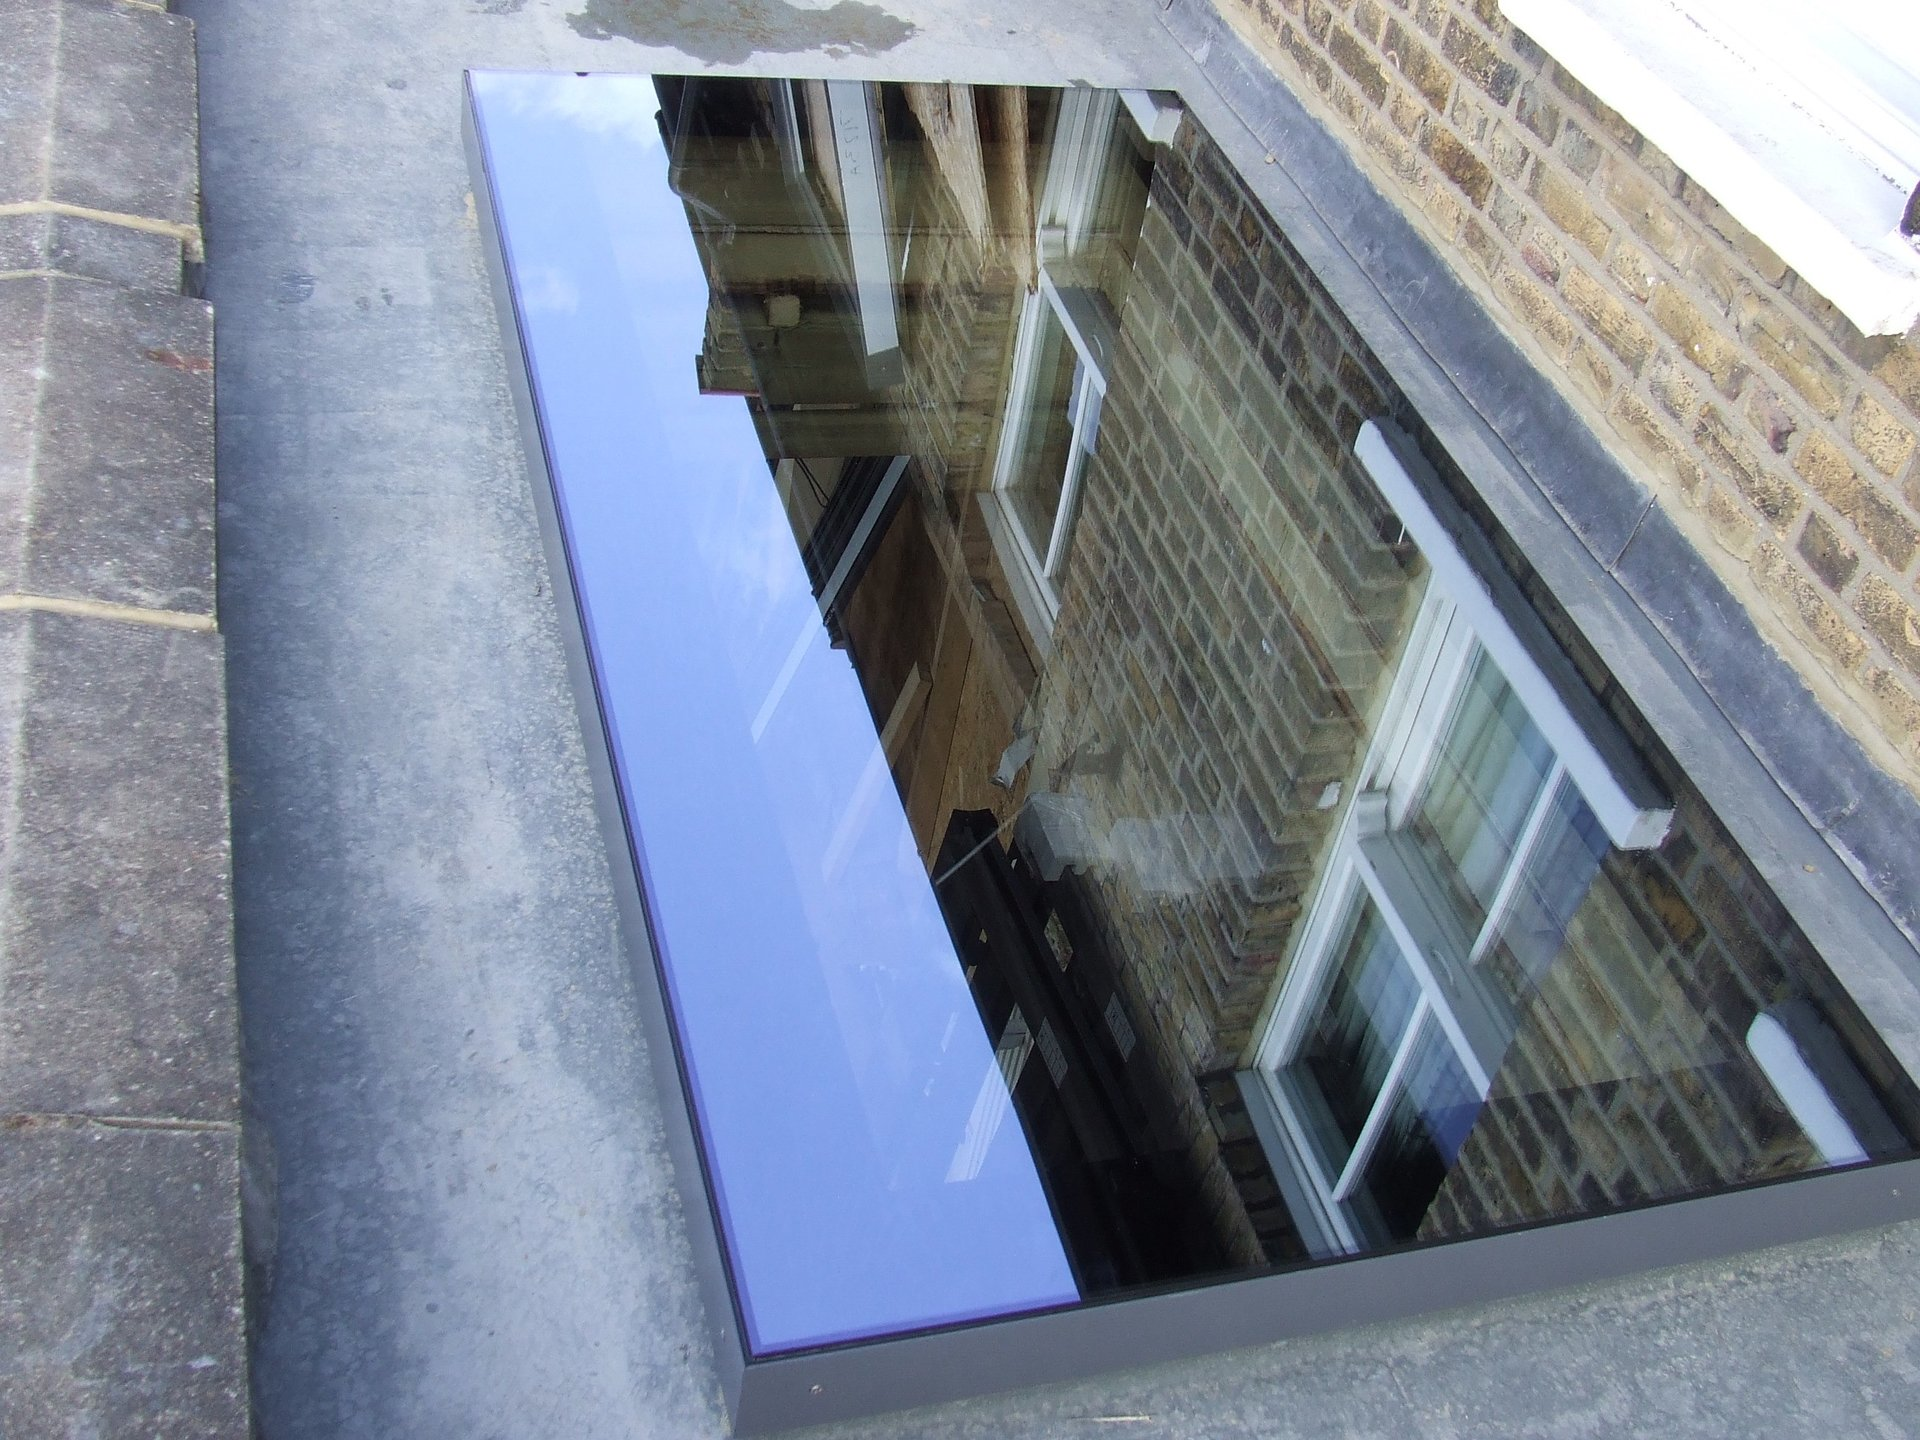 rooflight with reflection of building